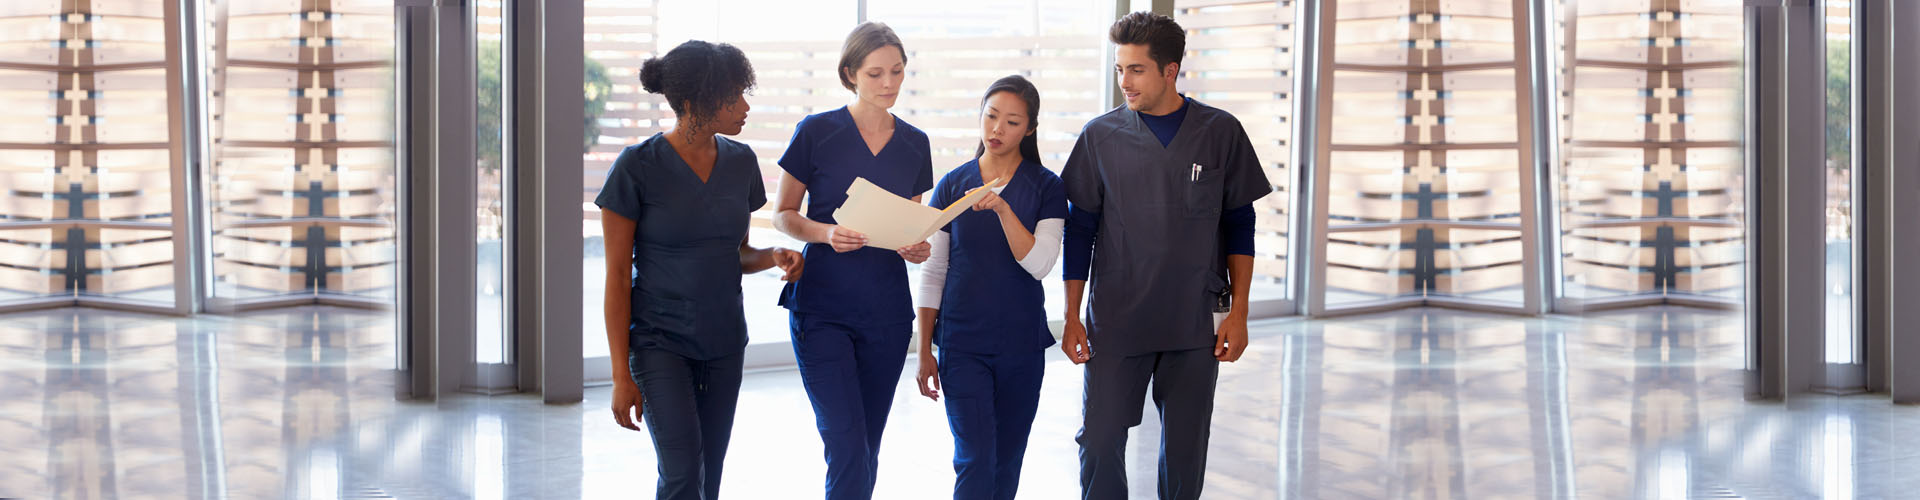 a group of caregivers discussing while walking